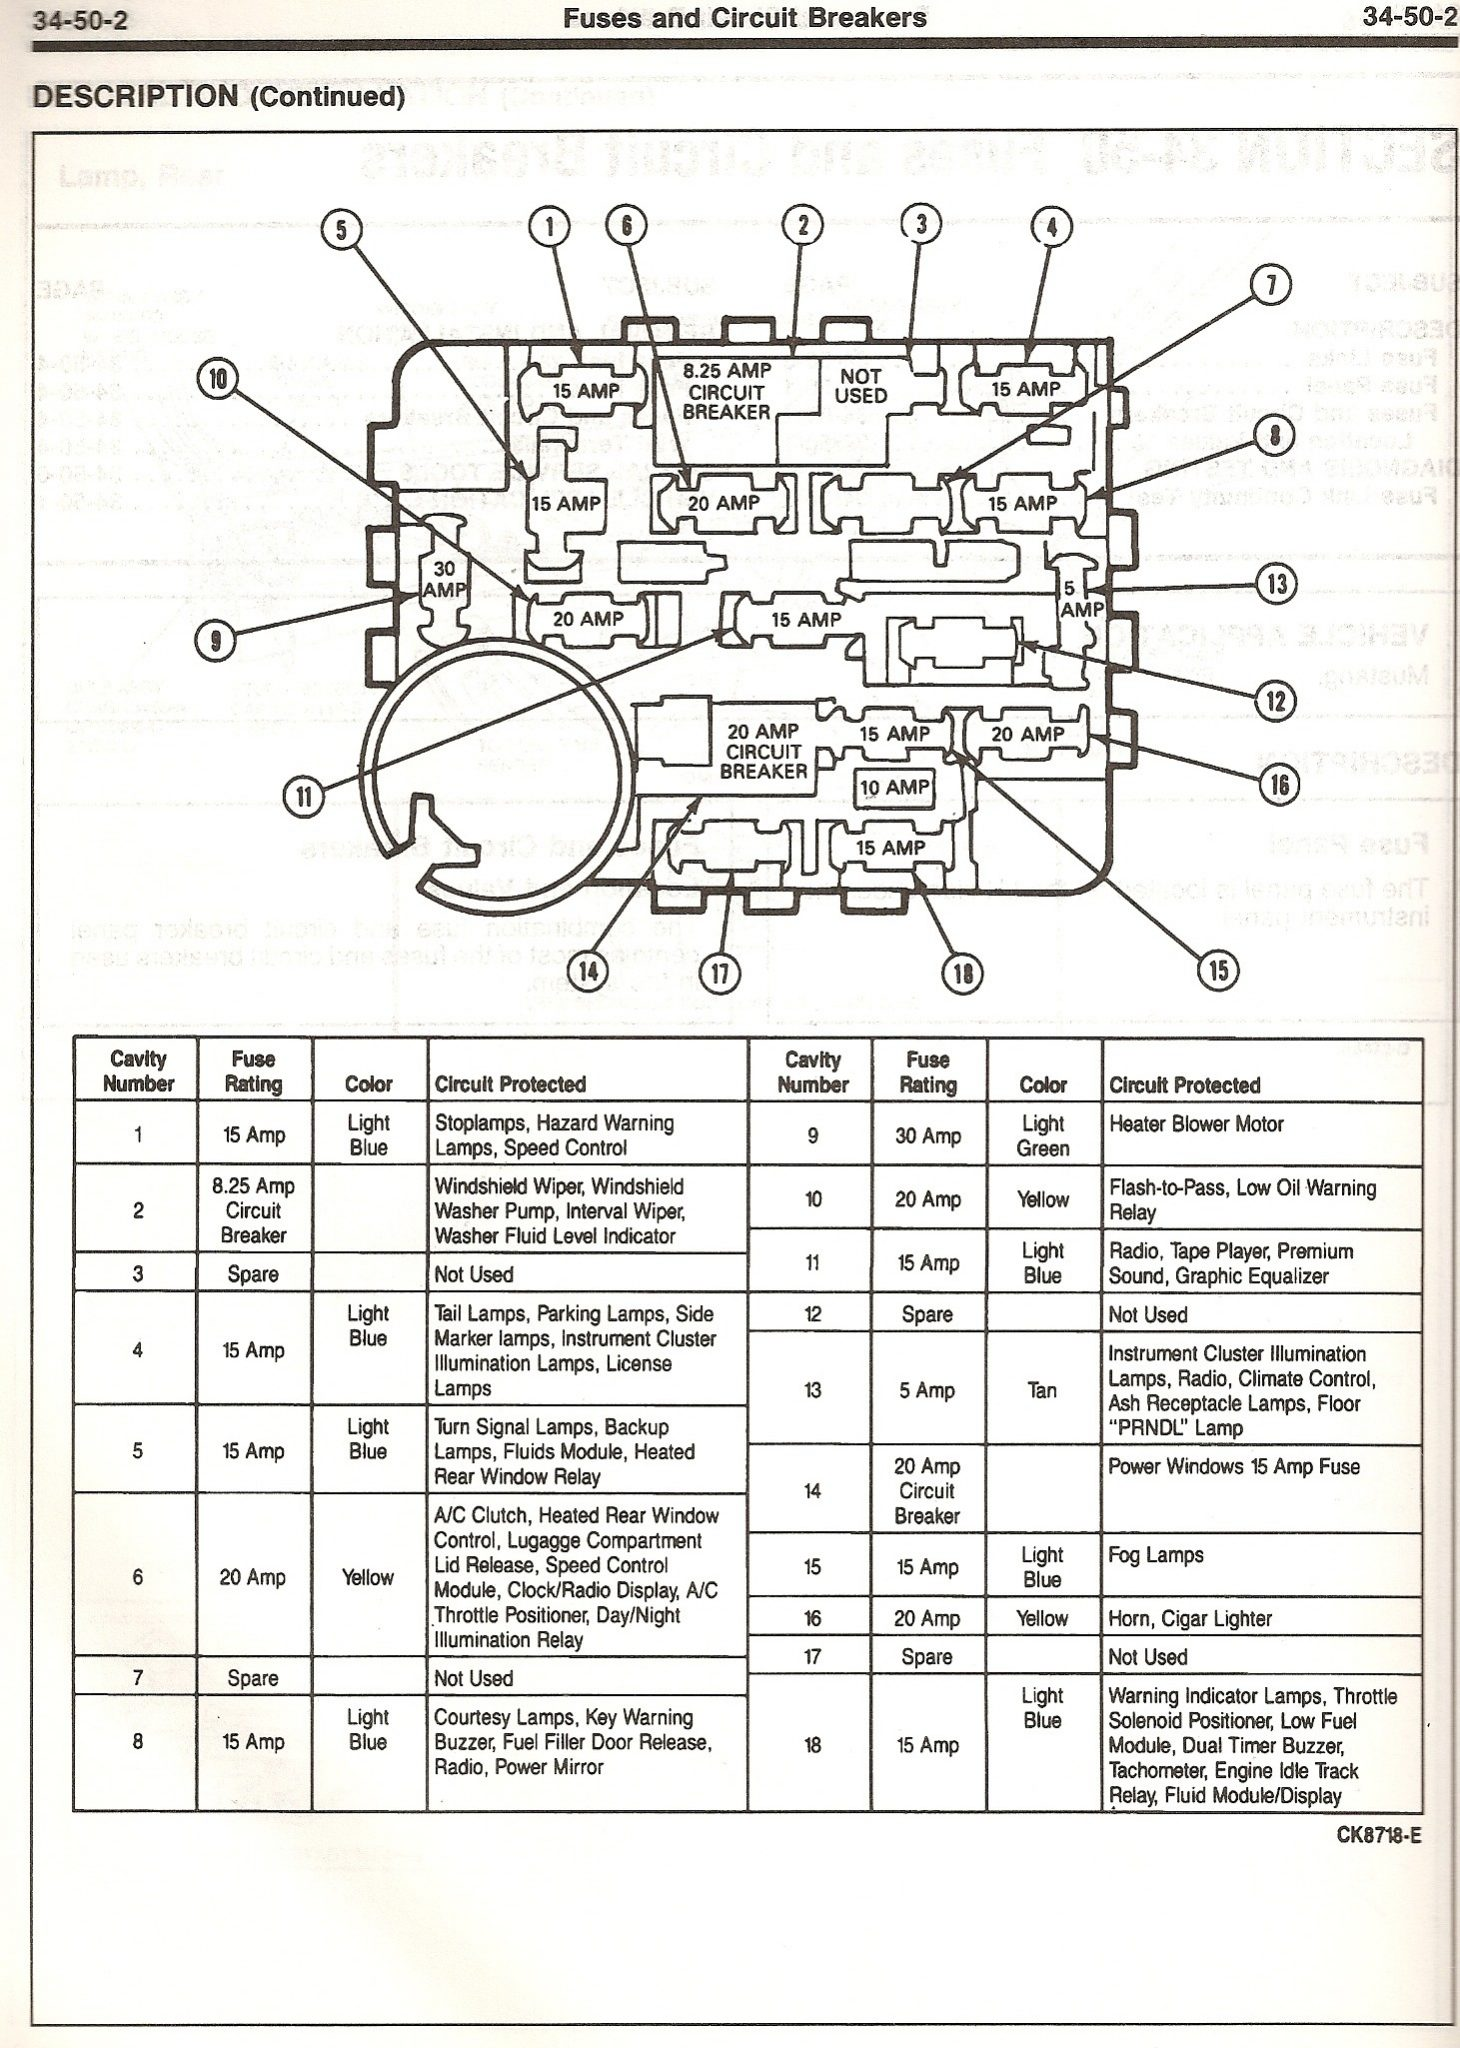 90 2pont3 mustang fuse panel dash diagram 1990 2 3l mustang engine bay fuse diagram fox body fuse box diagram at gsmportal.co